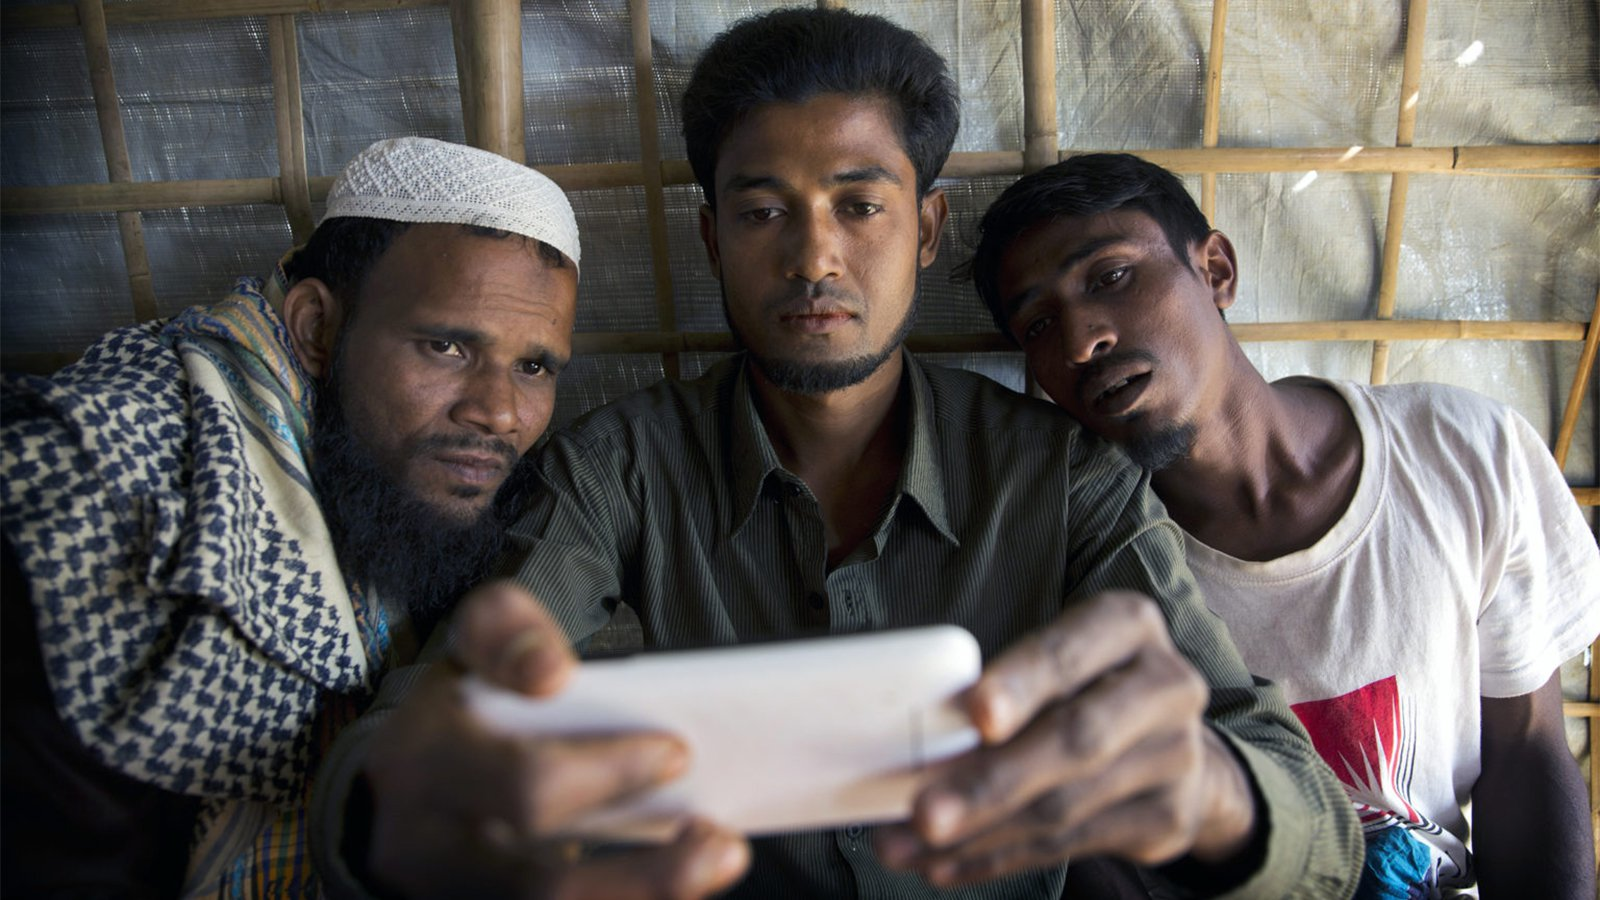 Facebook Vows to Fight Hate Speech, But It May Be Too Late for Rohingya Muslims